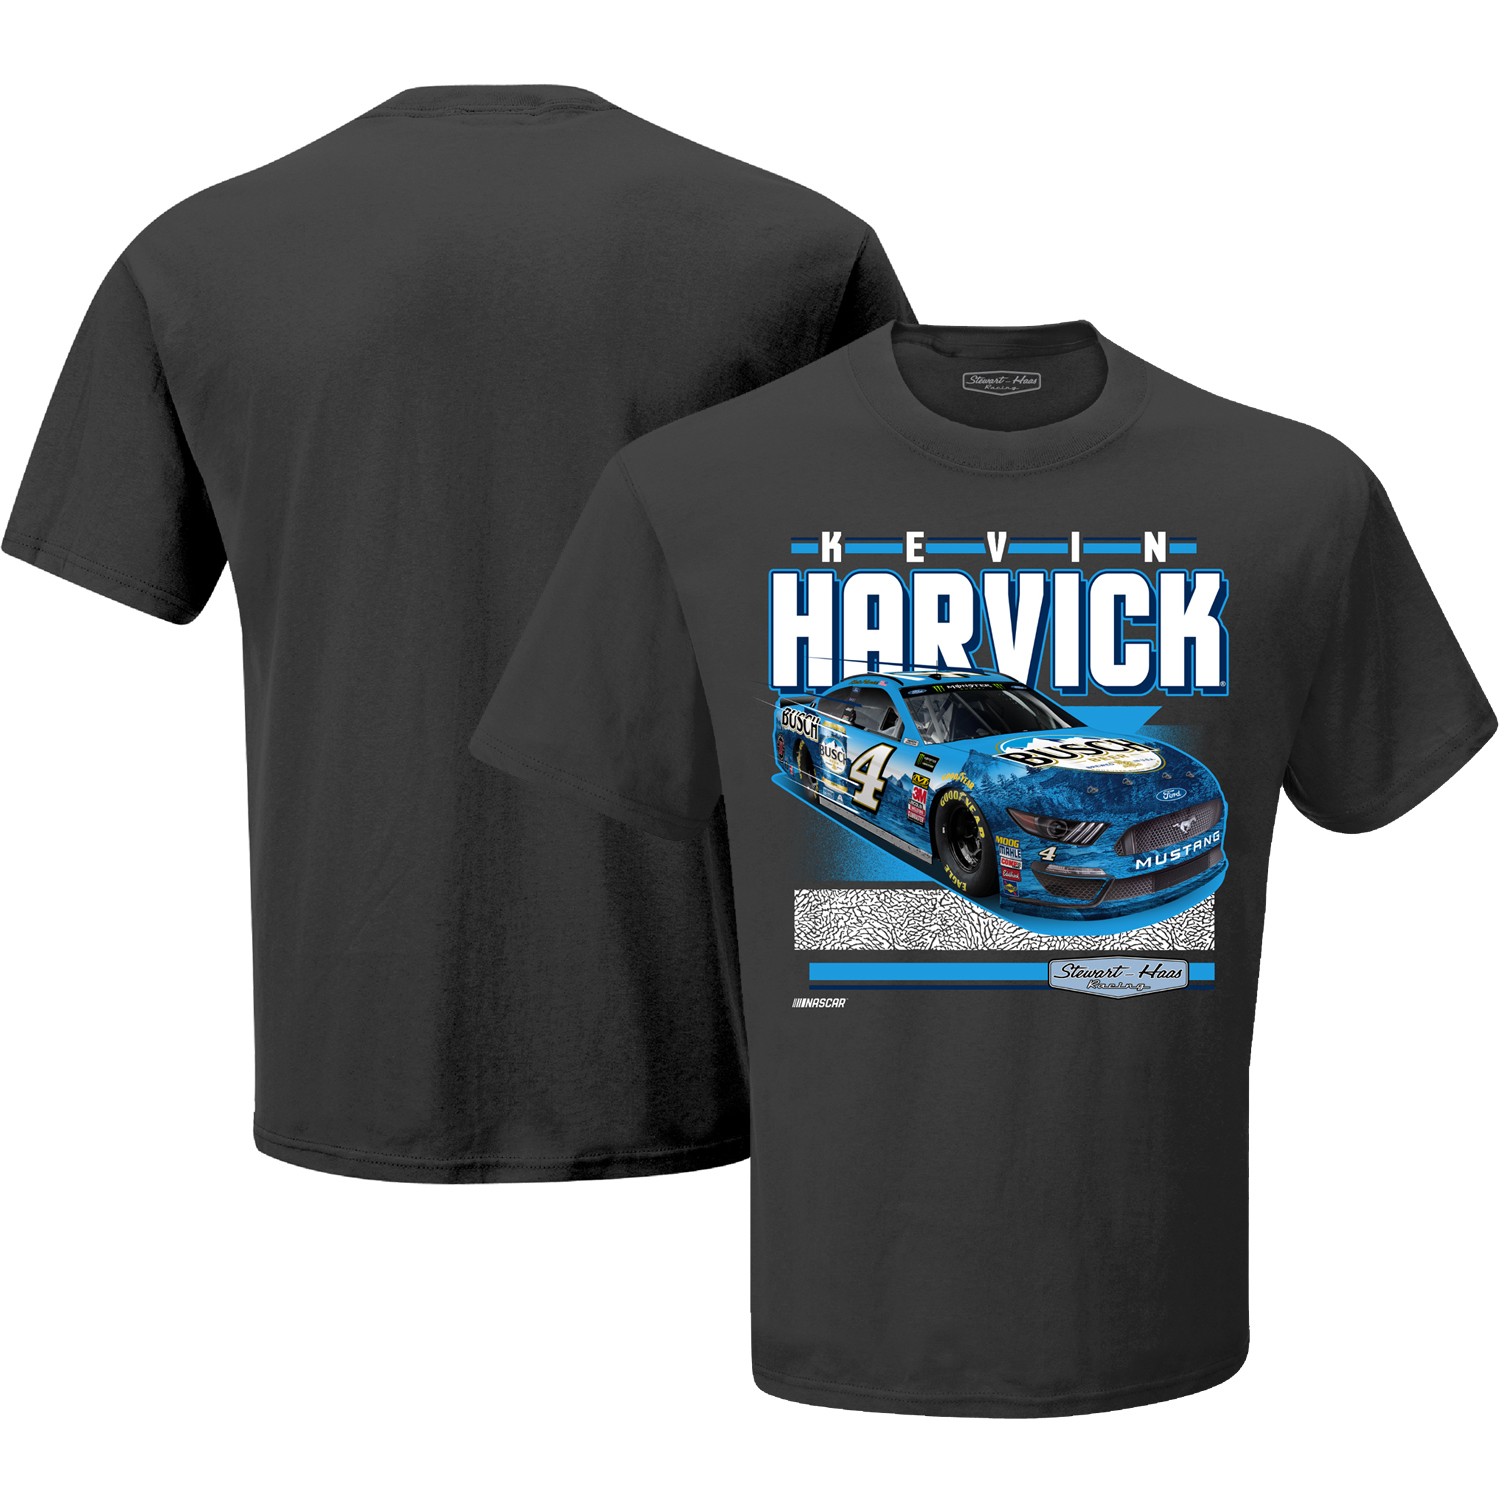 Kevin Harvick Stewart-Haas Racing Team Collection Retro Groove T-Shirt - Gray